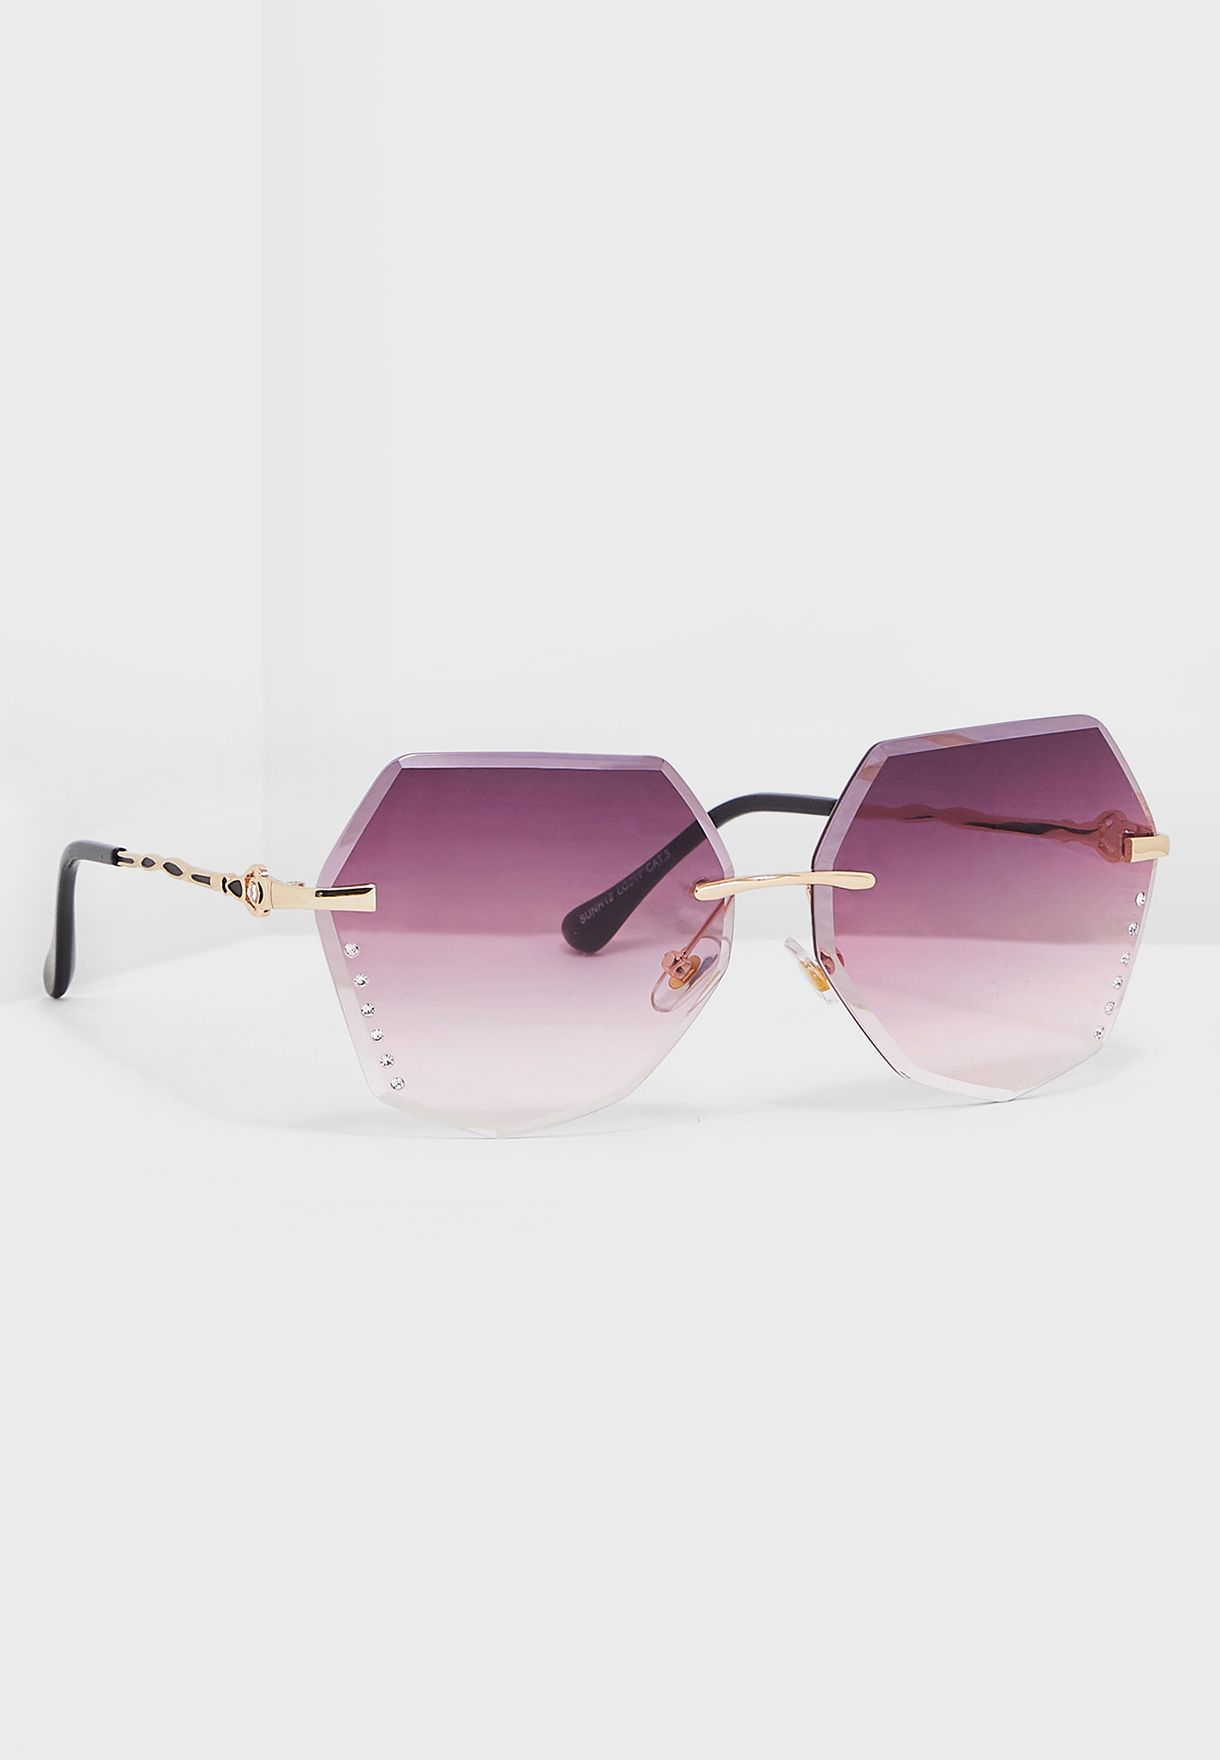 34be352842 Shop Ginger pink Angled Sunglasses With Ombre Lens SUNH12-PNK for Women in  Oman - 11096AC48GDP